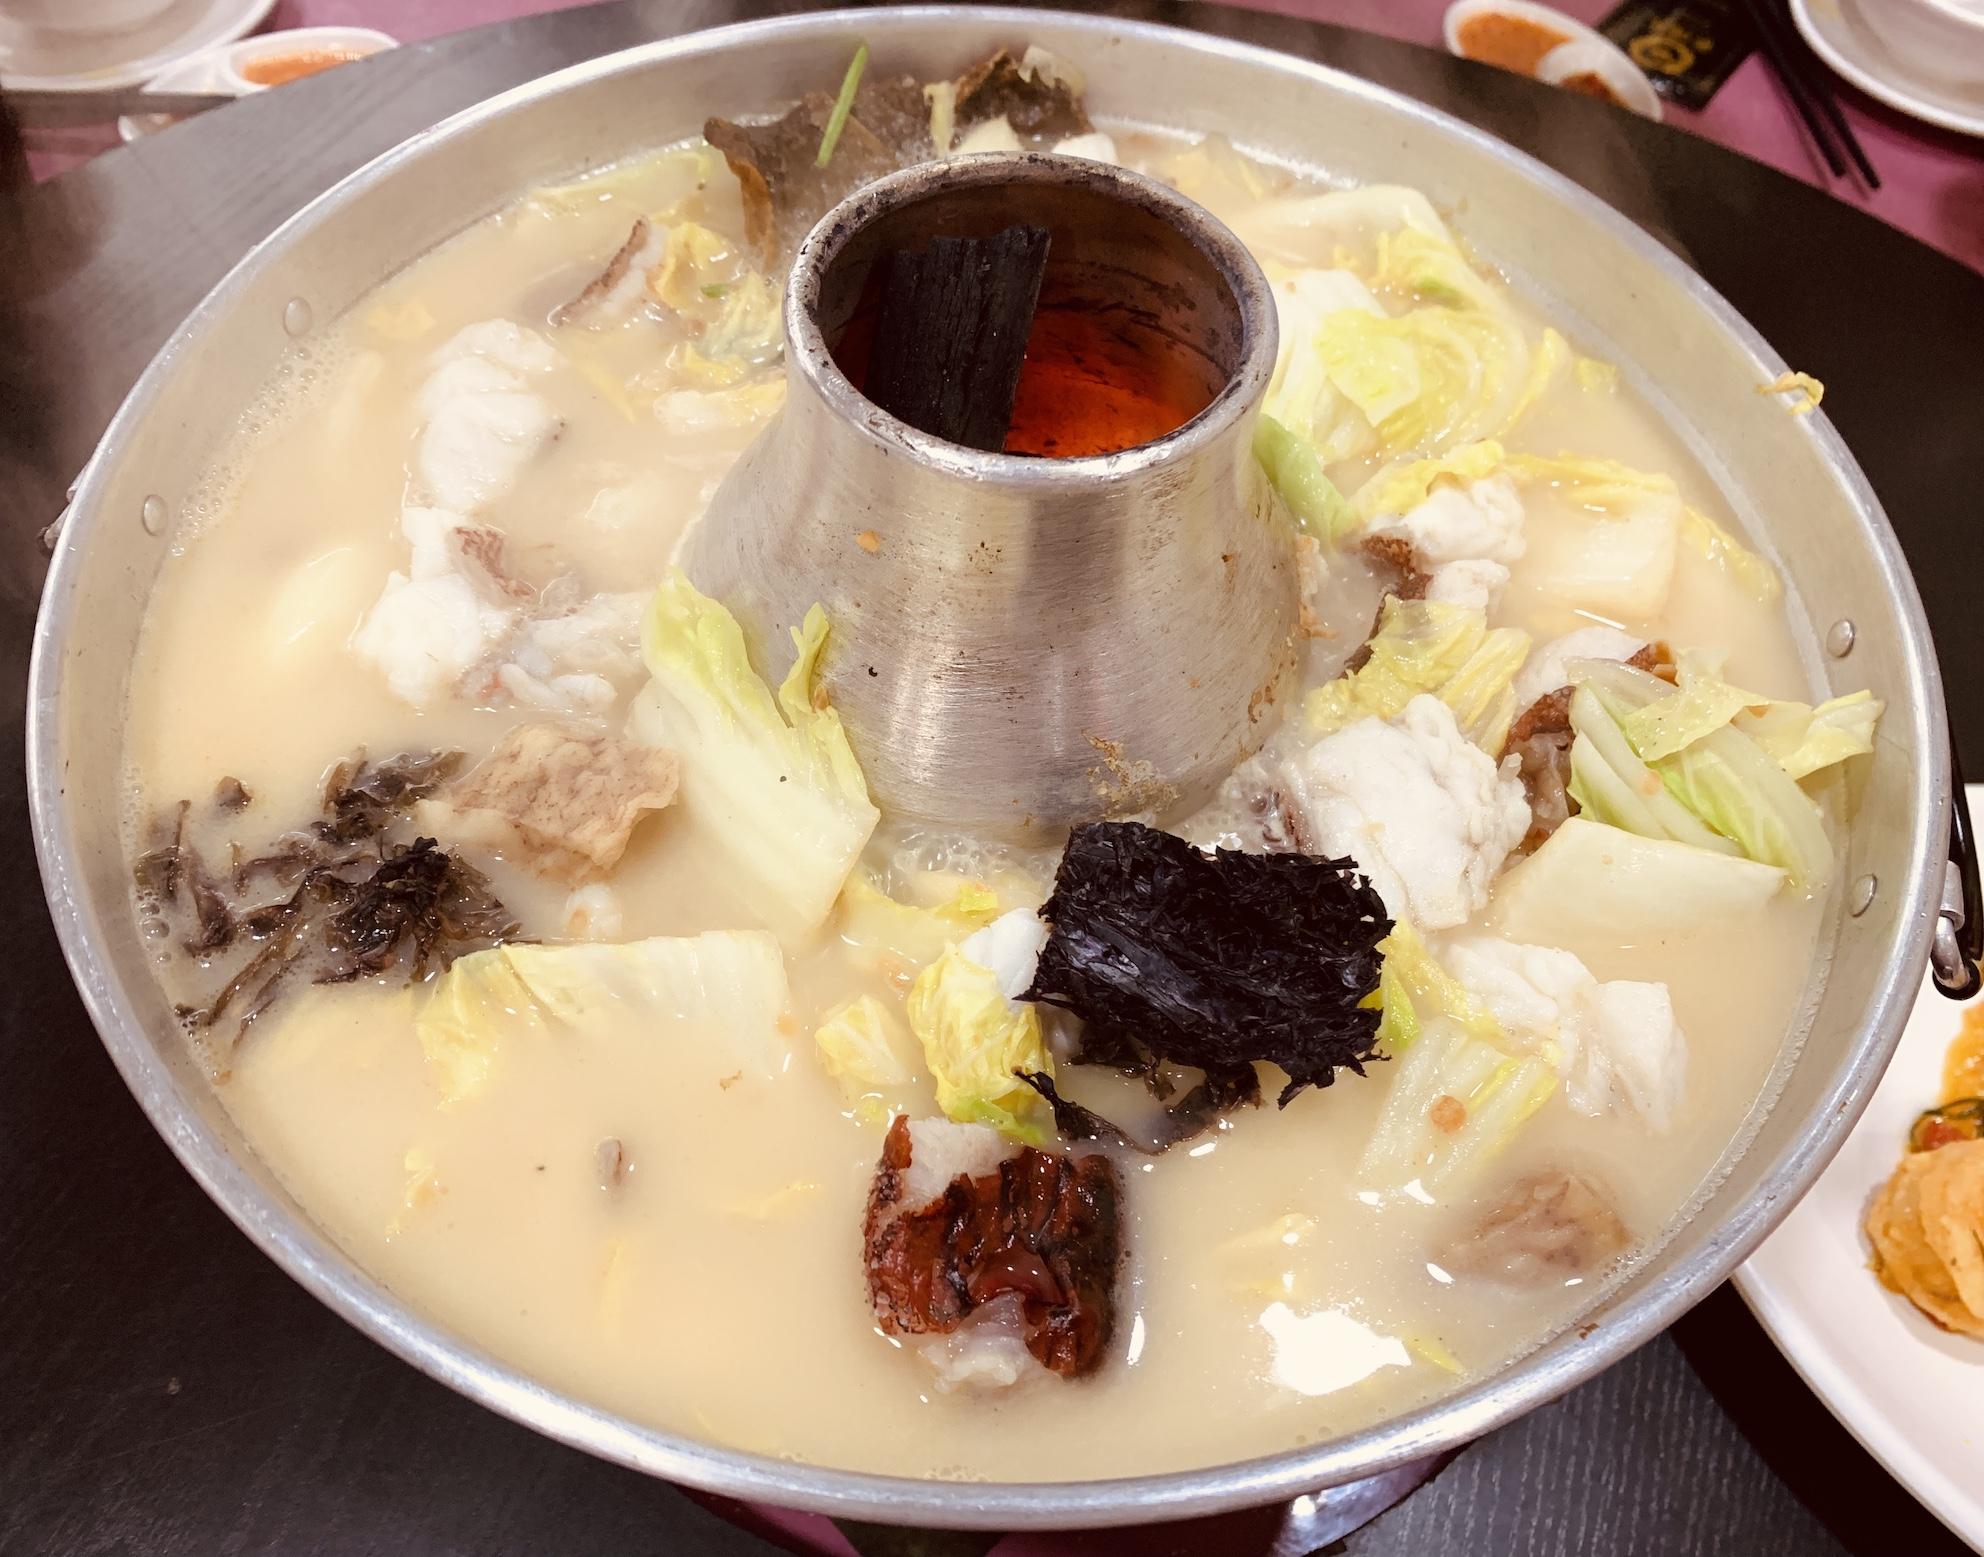 Whampoa Keng Food Street Steamboat Restaurant - Whampoa Keng Signature Fish Head Steamboat